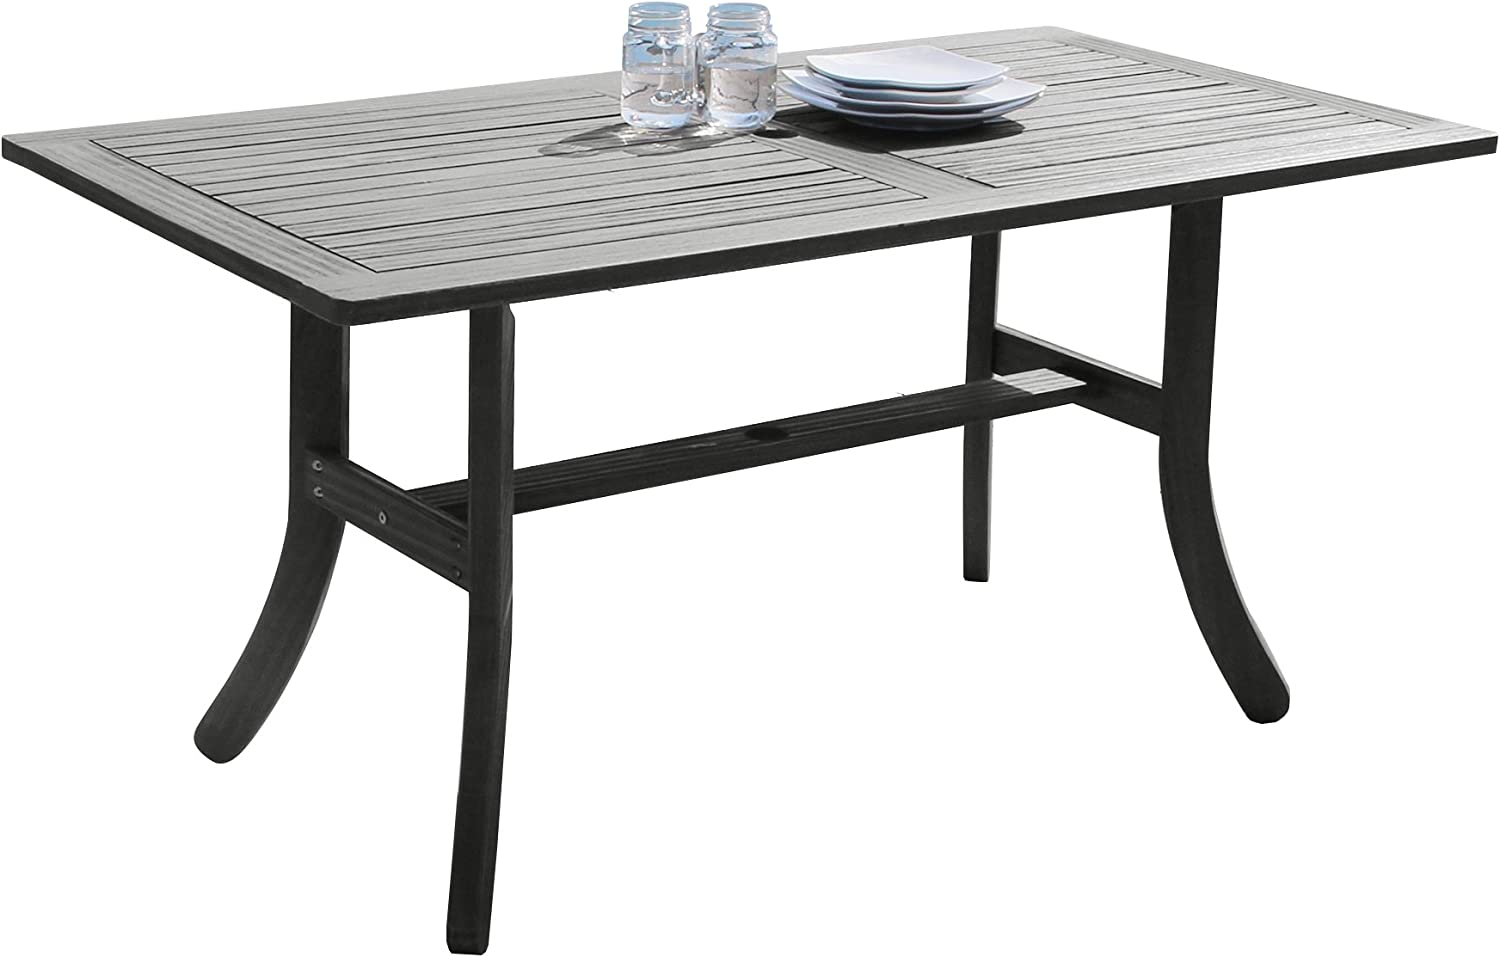 Vifah V1300 Rectangular Wooden Patio Dining Table: Furniture & Decor